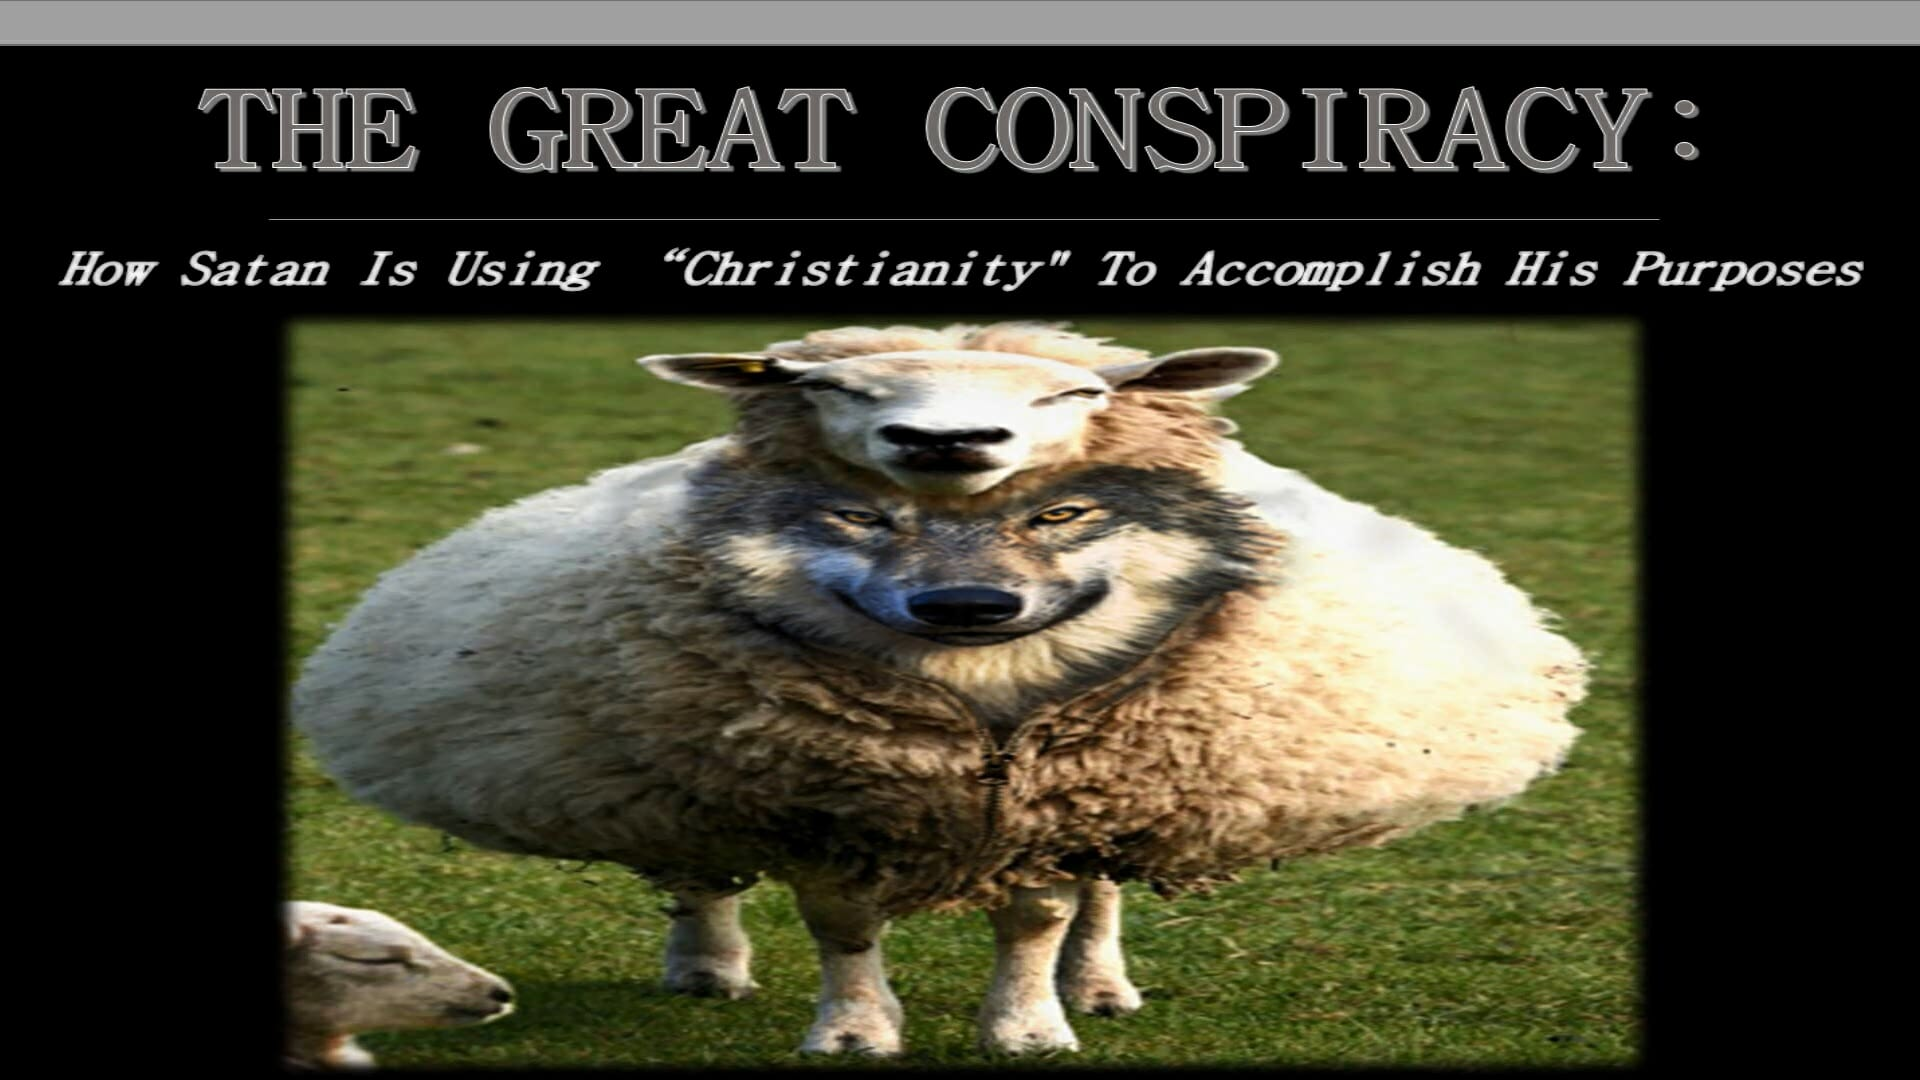 The Great Conspiracy Series